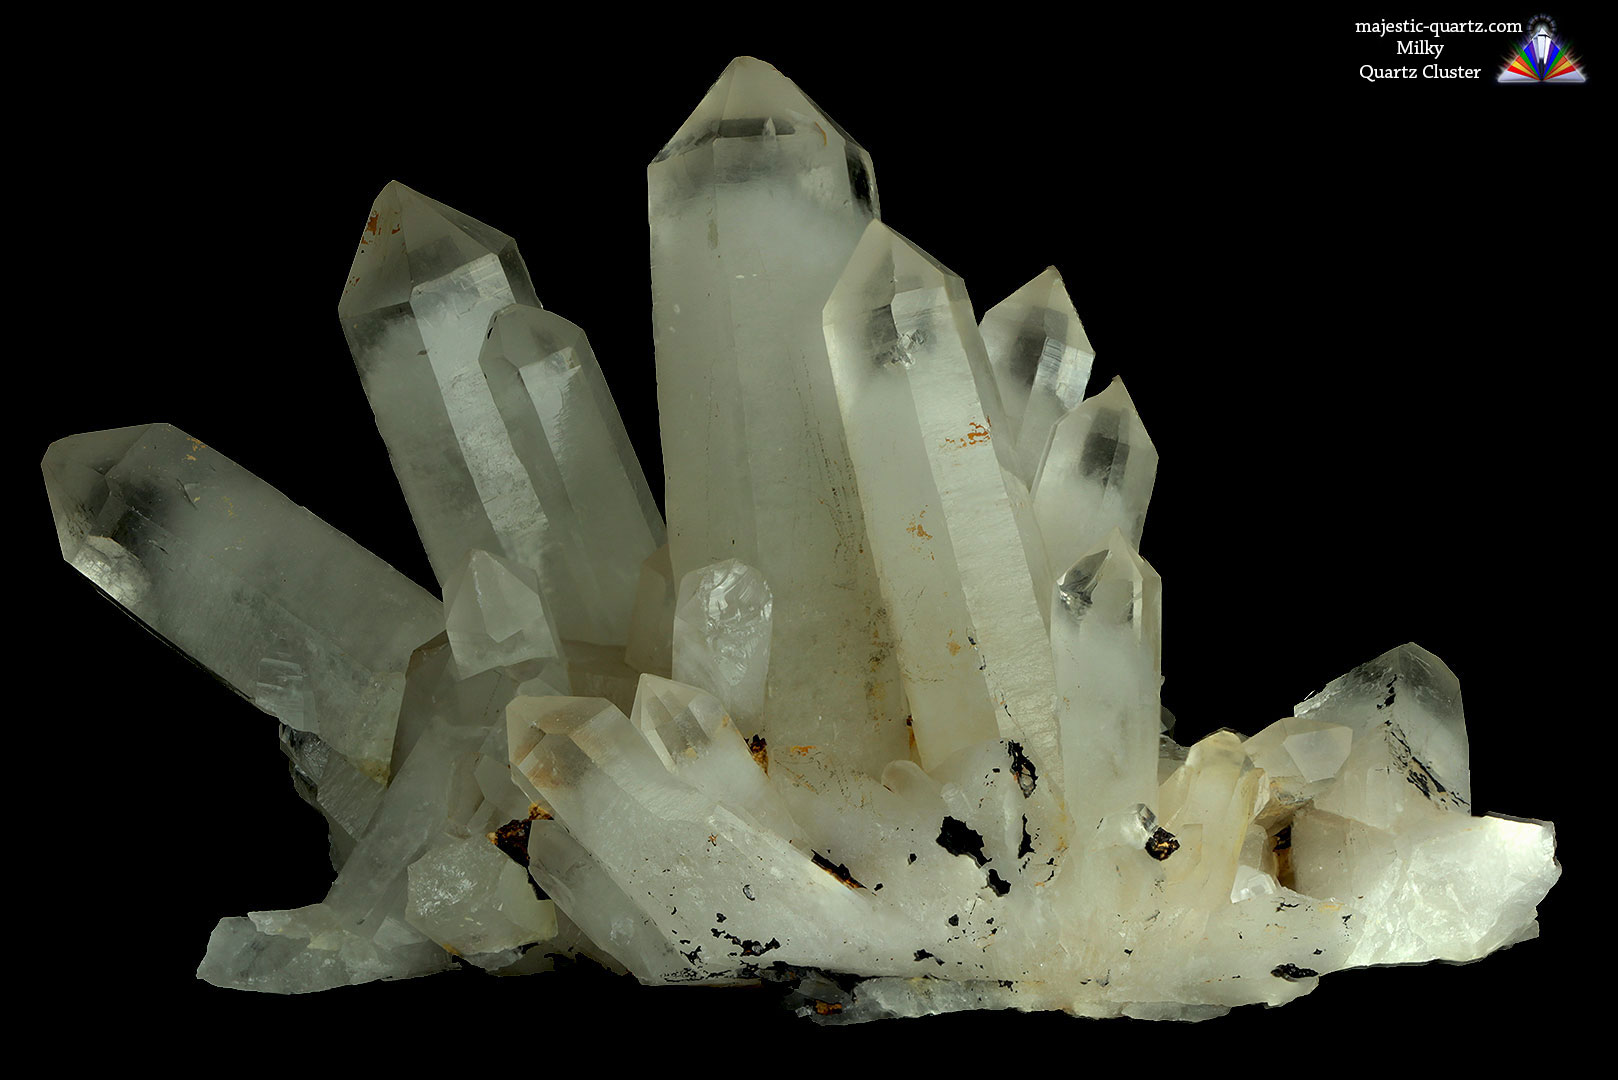 quartz cluster properties and meaning photos crystal